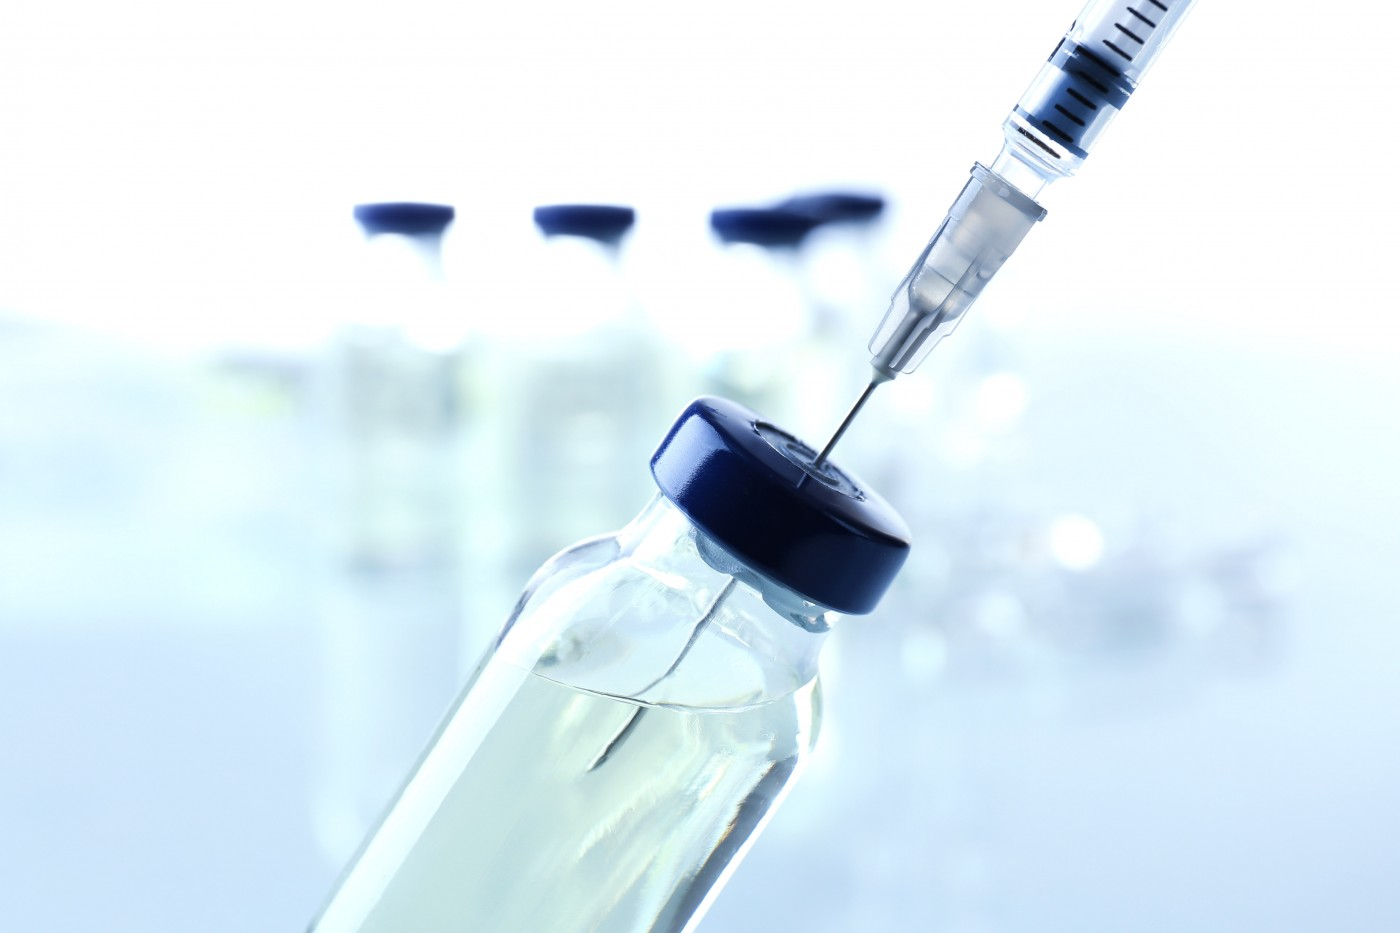 Novel Cell-Squeezing Device Offers New Possibilities for Cell-Based Vaccine Development